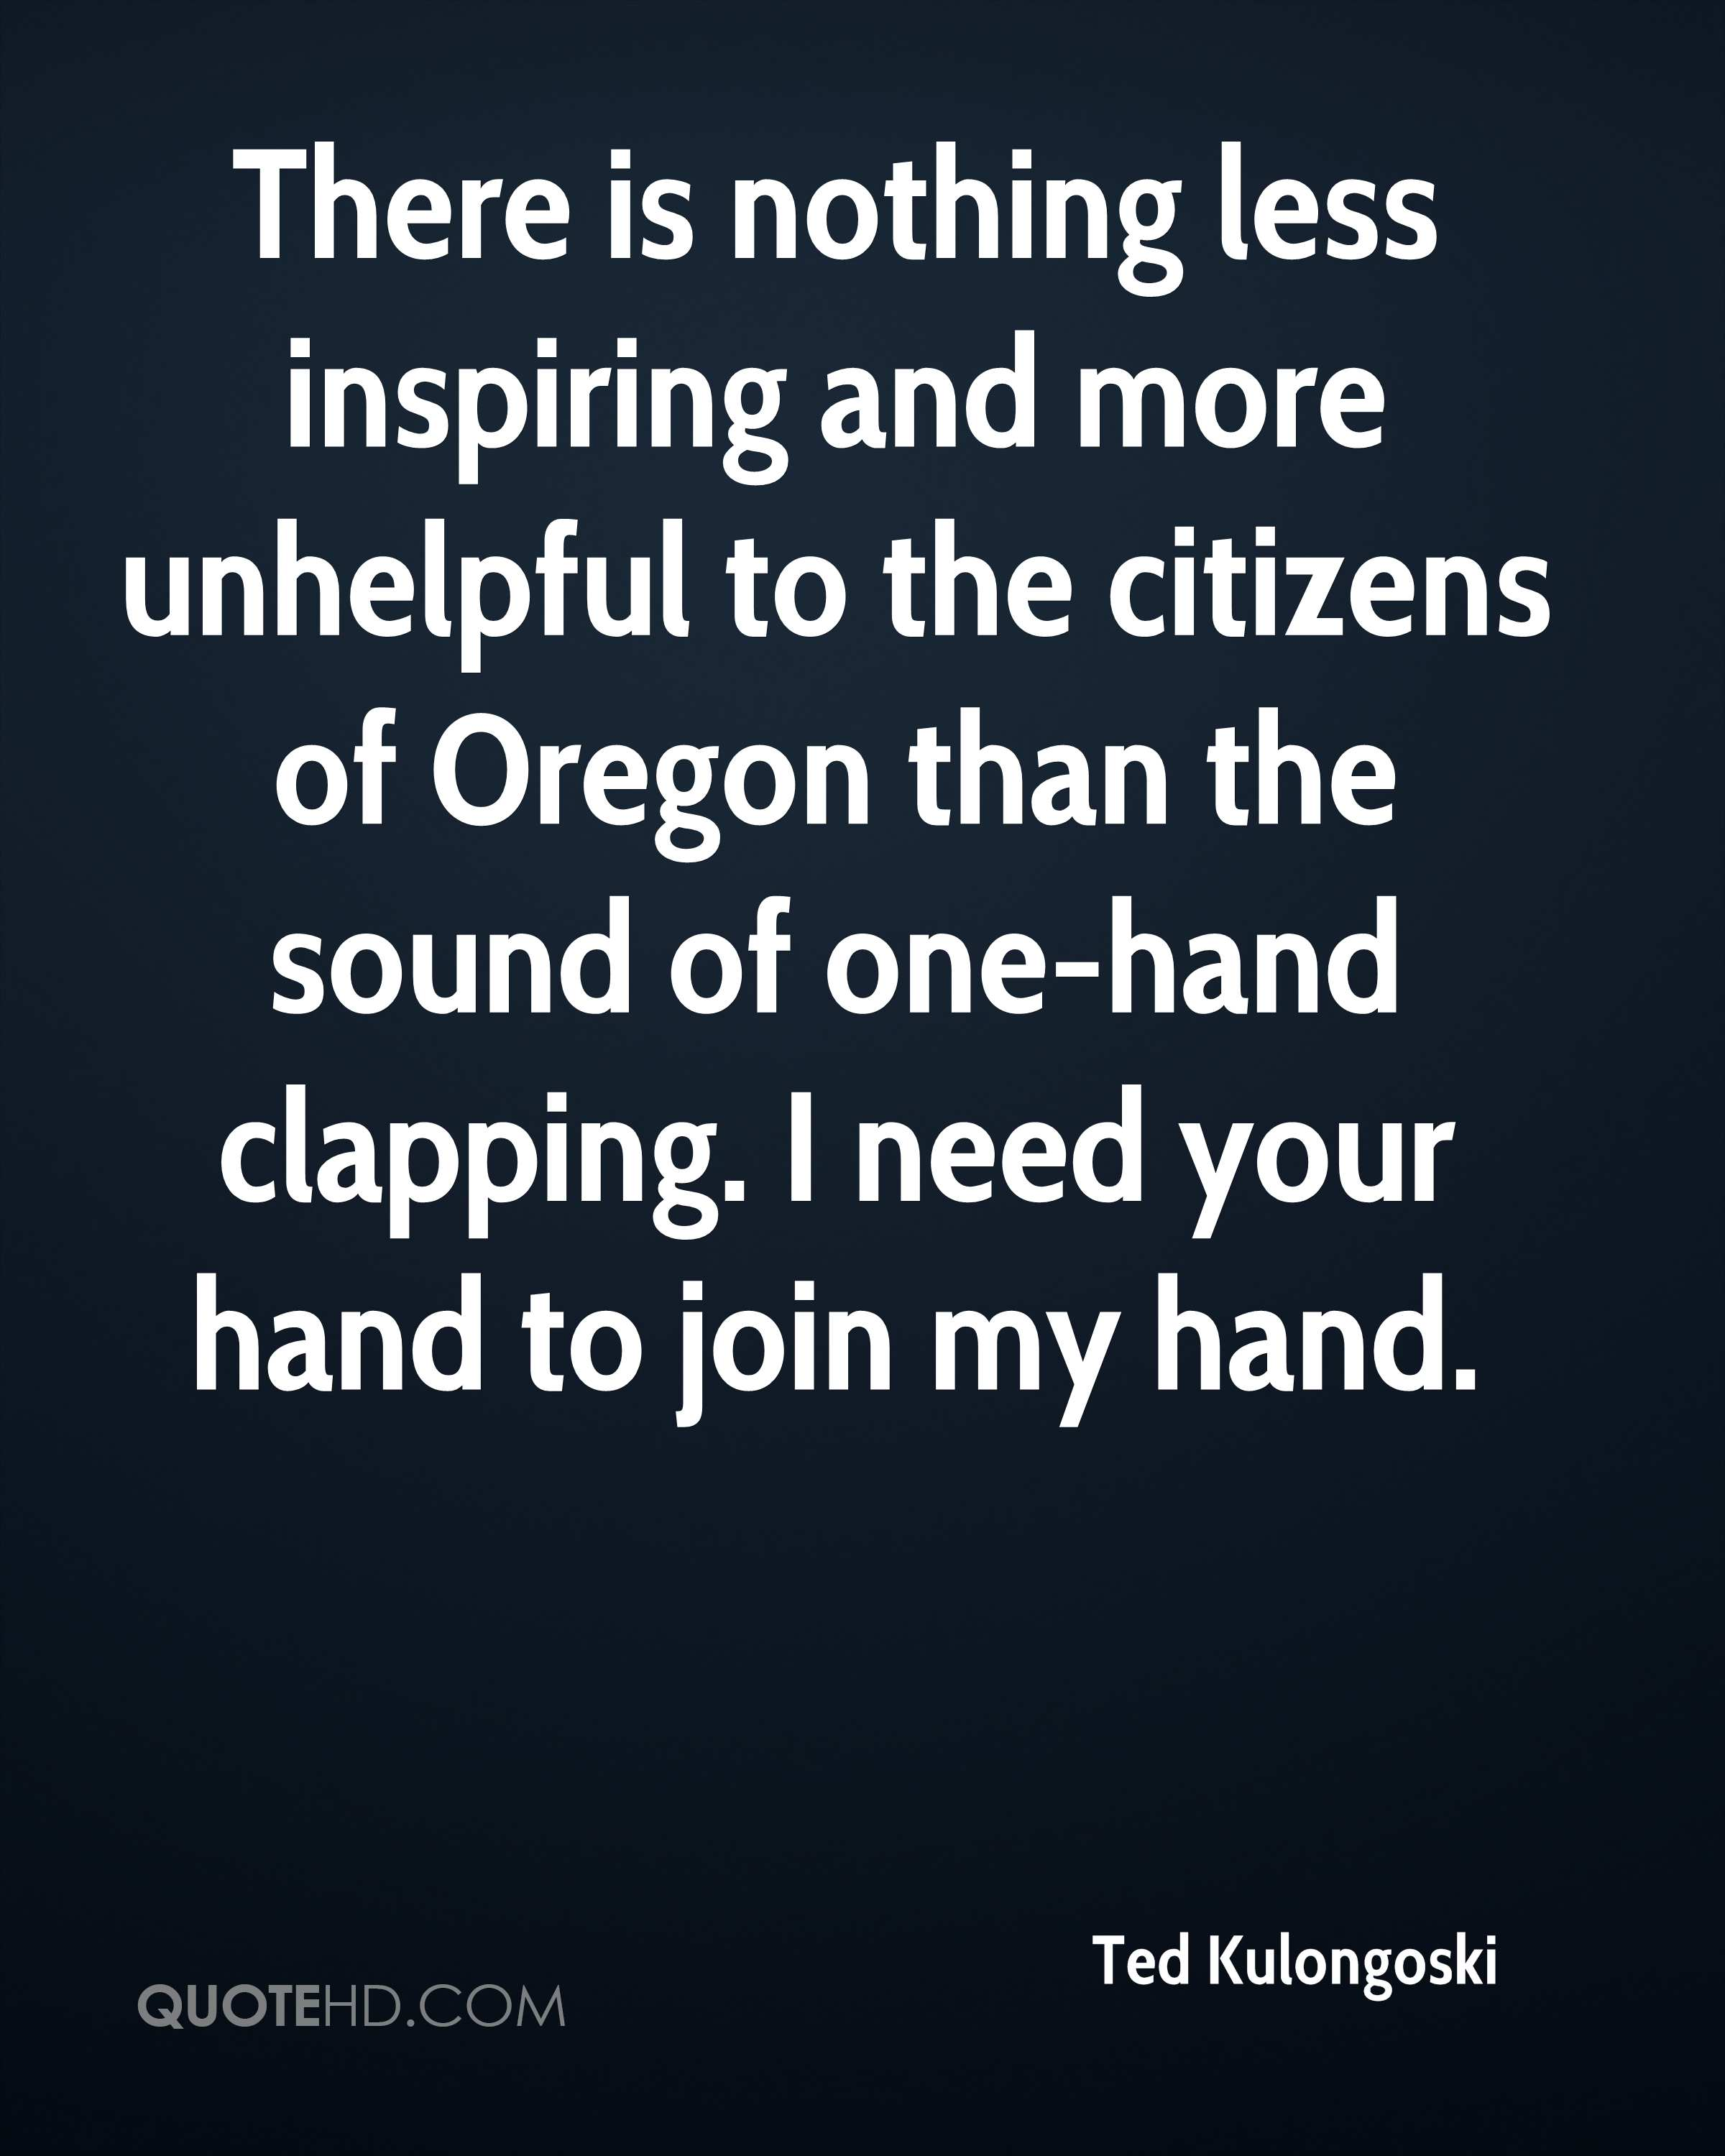 There is nothing less inspiring and more unhelpful to the citizens of Oregon than the sound of one-hand clapping. I need your hand to join my hand.